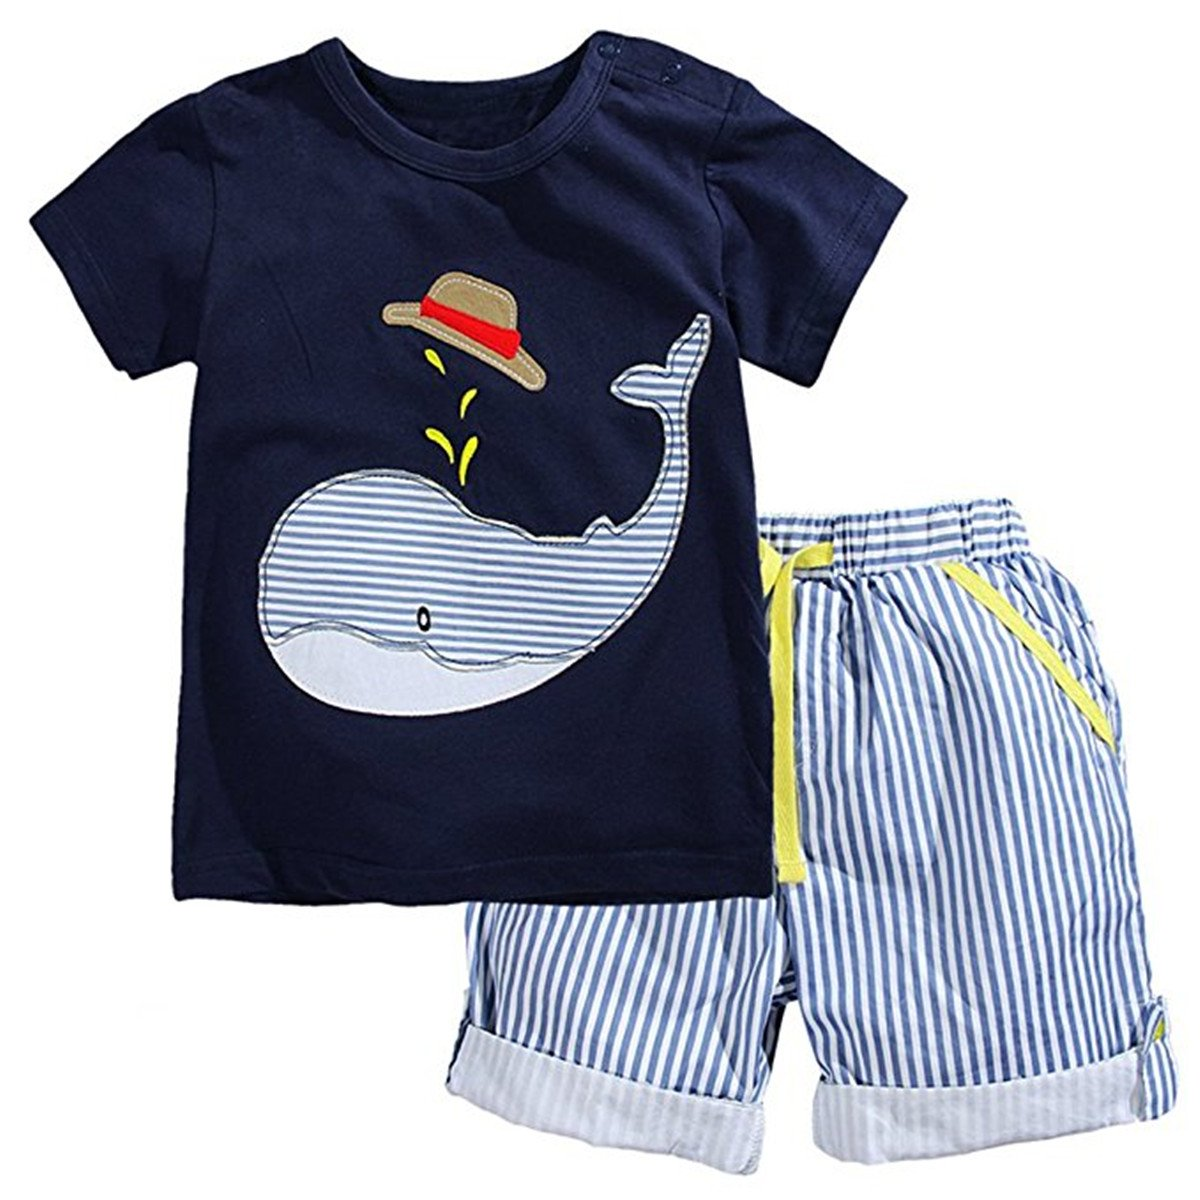 Toddler Baby Little Boy 2 Pcs Cotton Summer Animal Print T-shirt Shorts Outfits Set